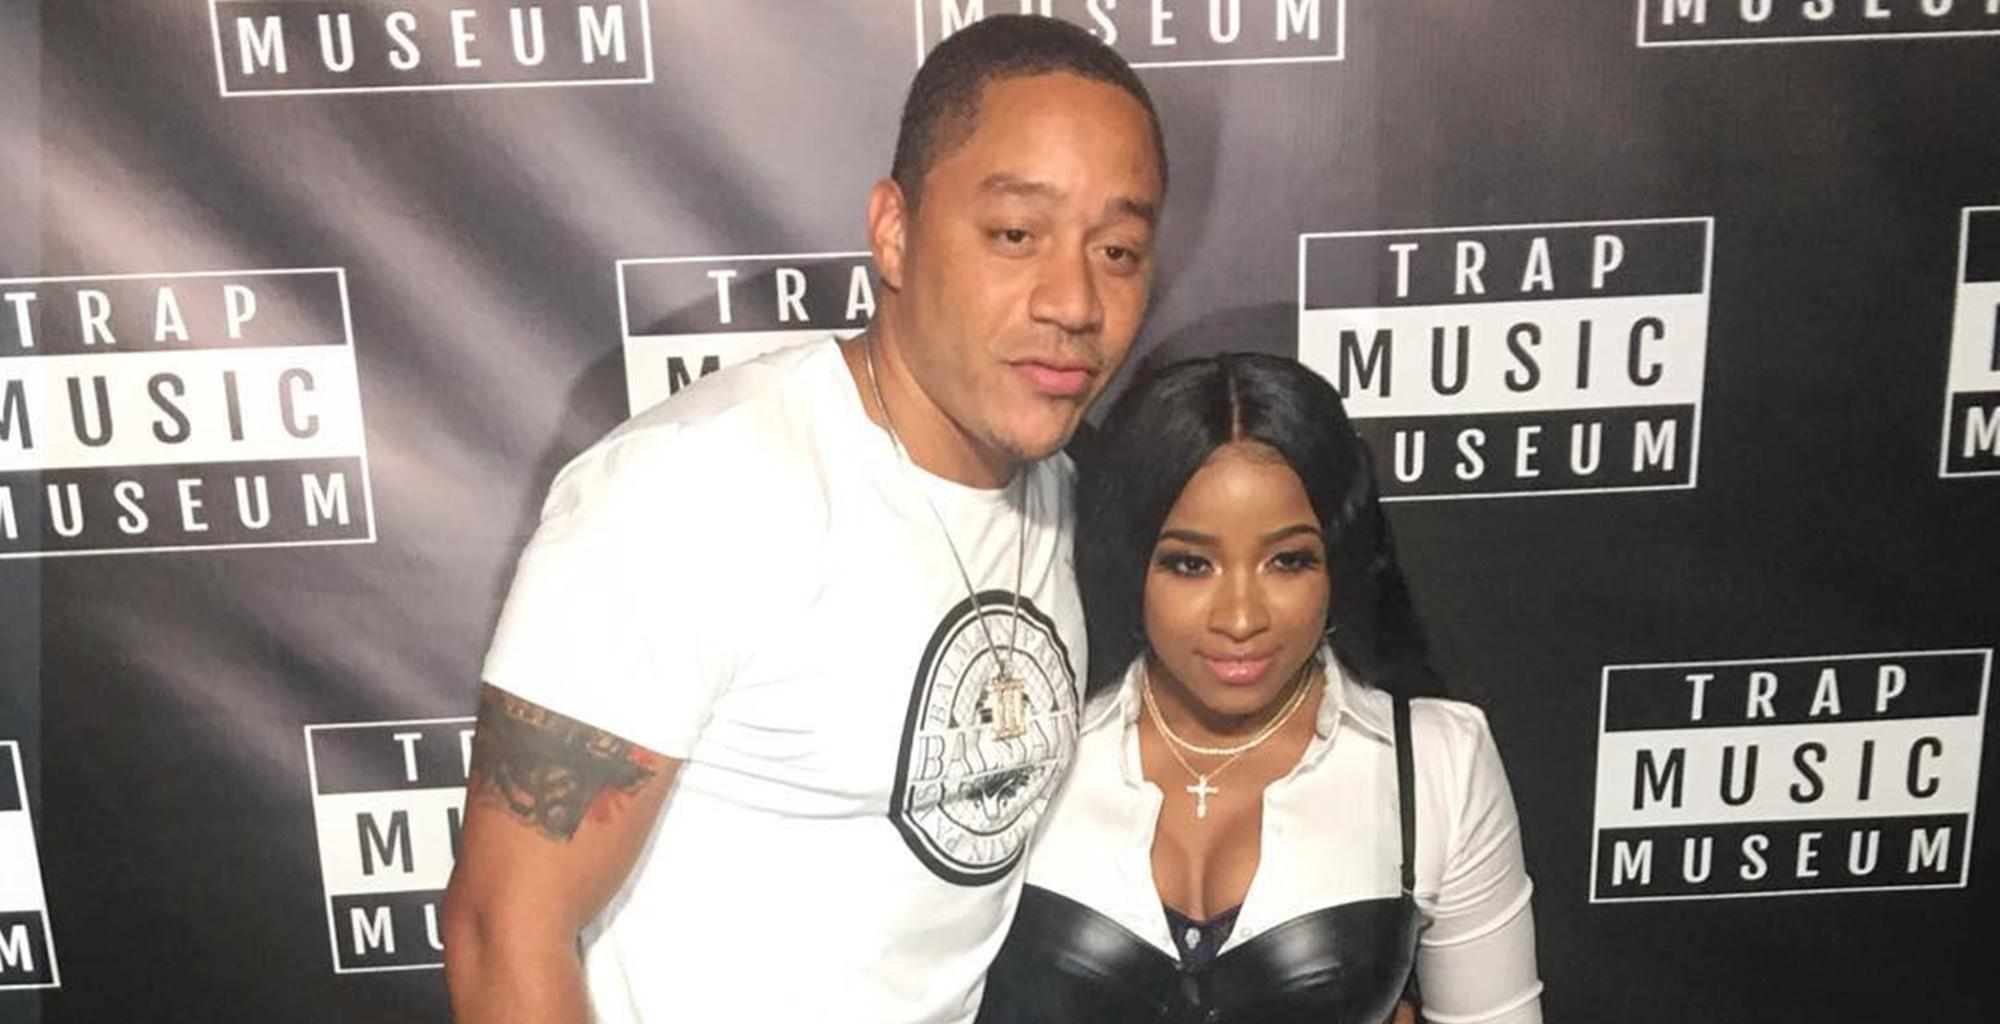 Robert Rushing Makes Fun Of Toya Wright For Her Refusal To Get Married - People Beg Toya To Accept His Proposal Already